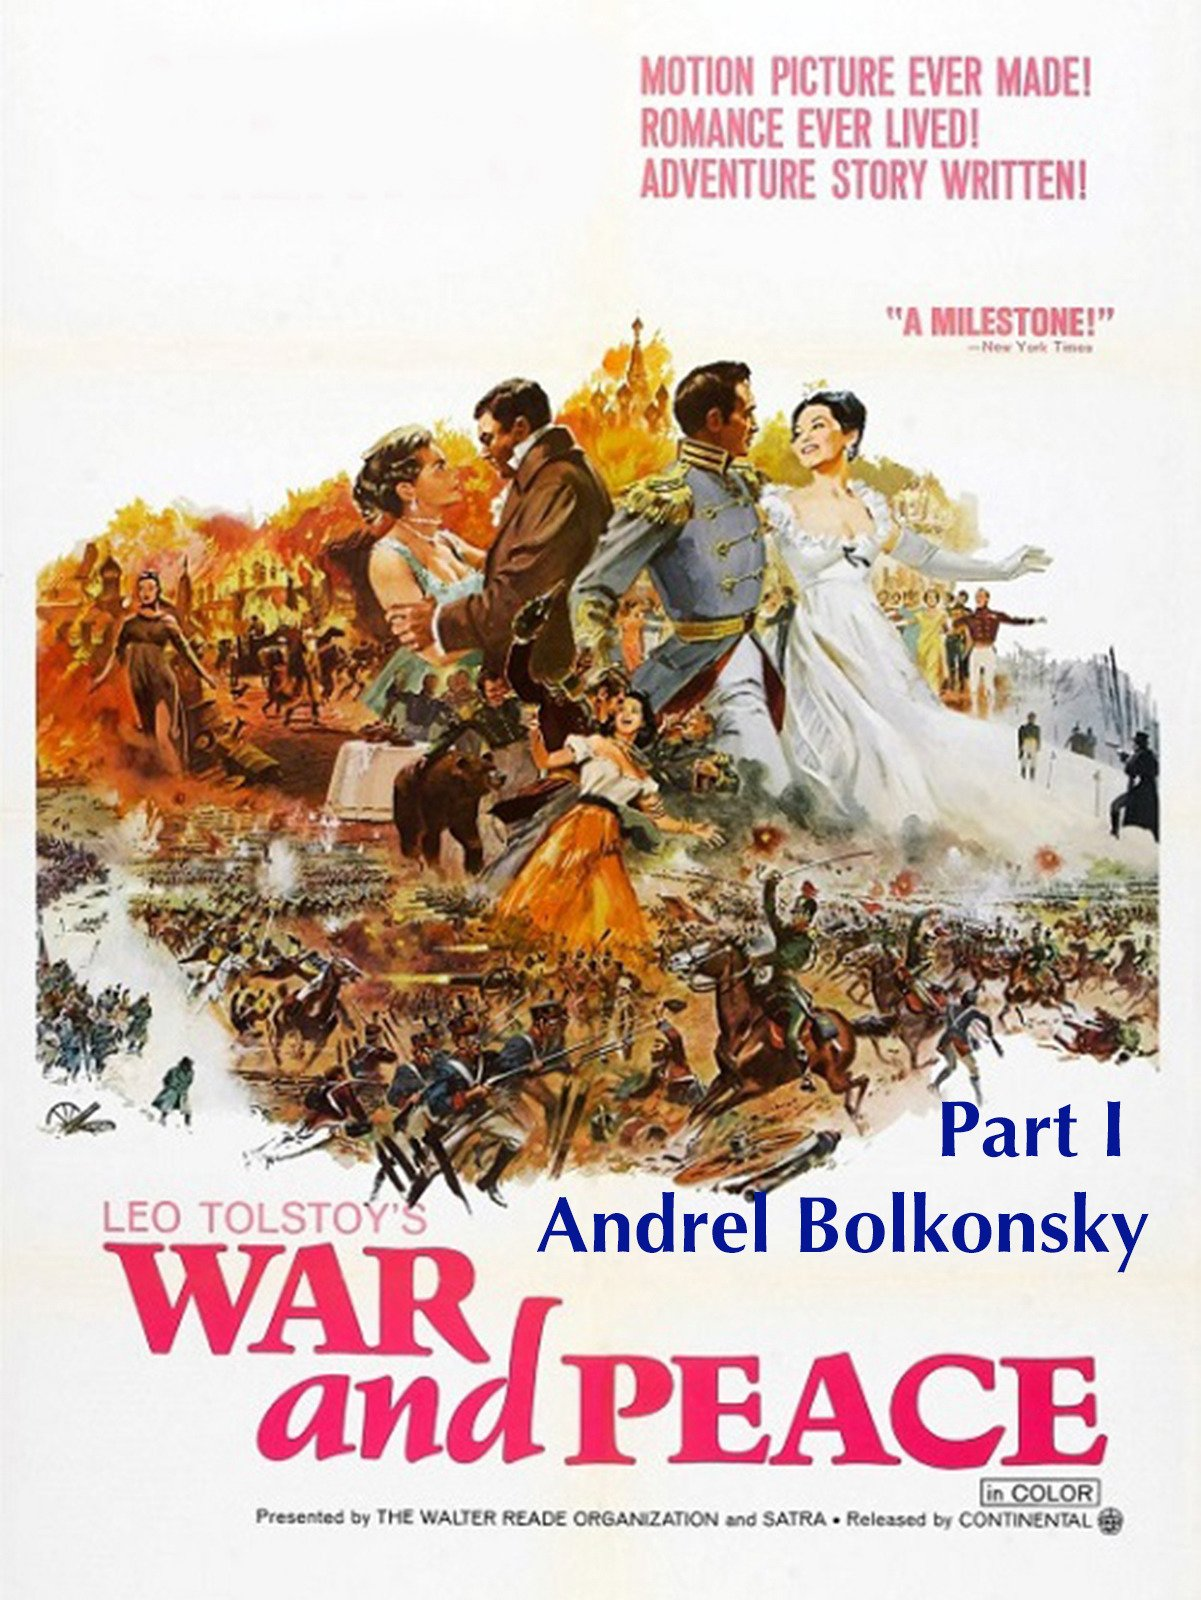 War and Peace: Part I Andrel Bolkonsky on Amazon Prime Video UK